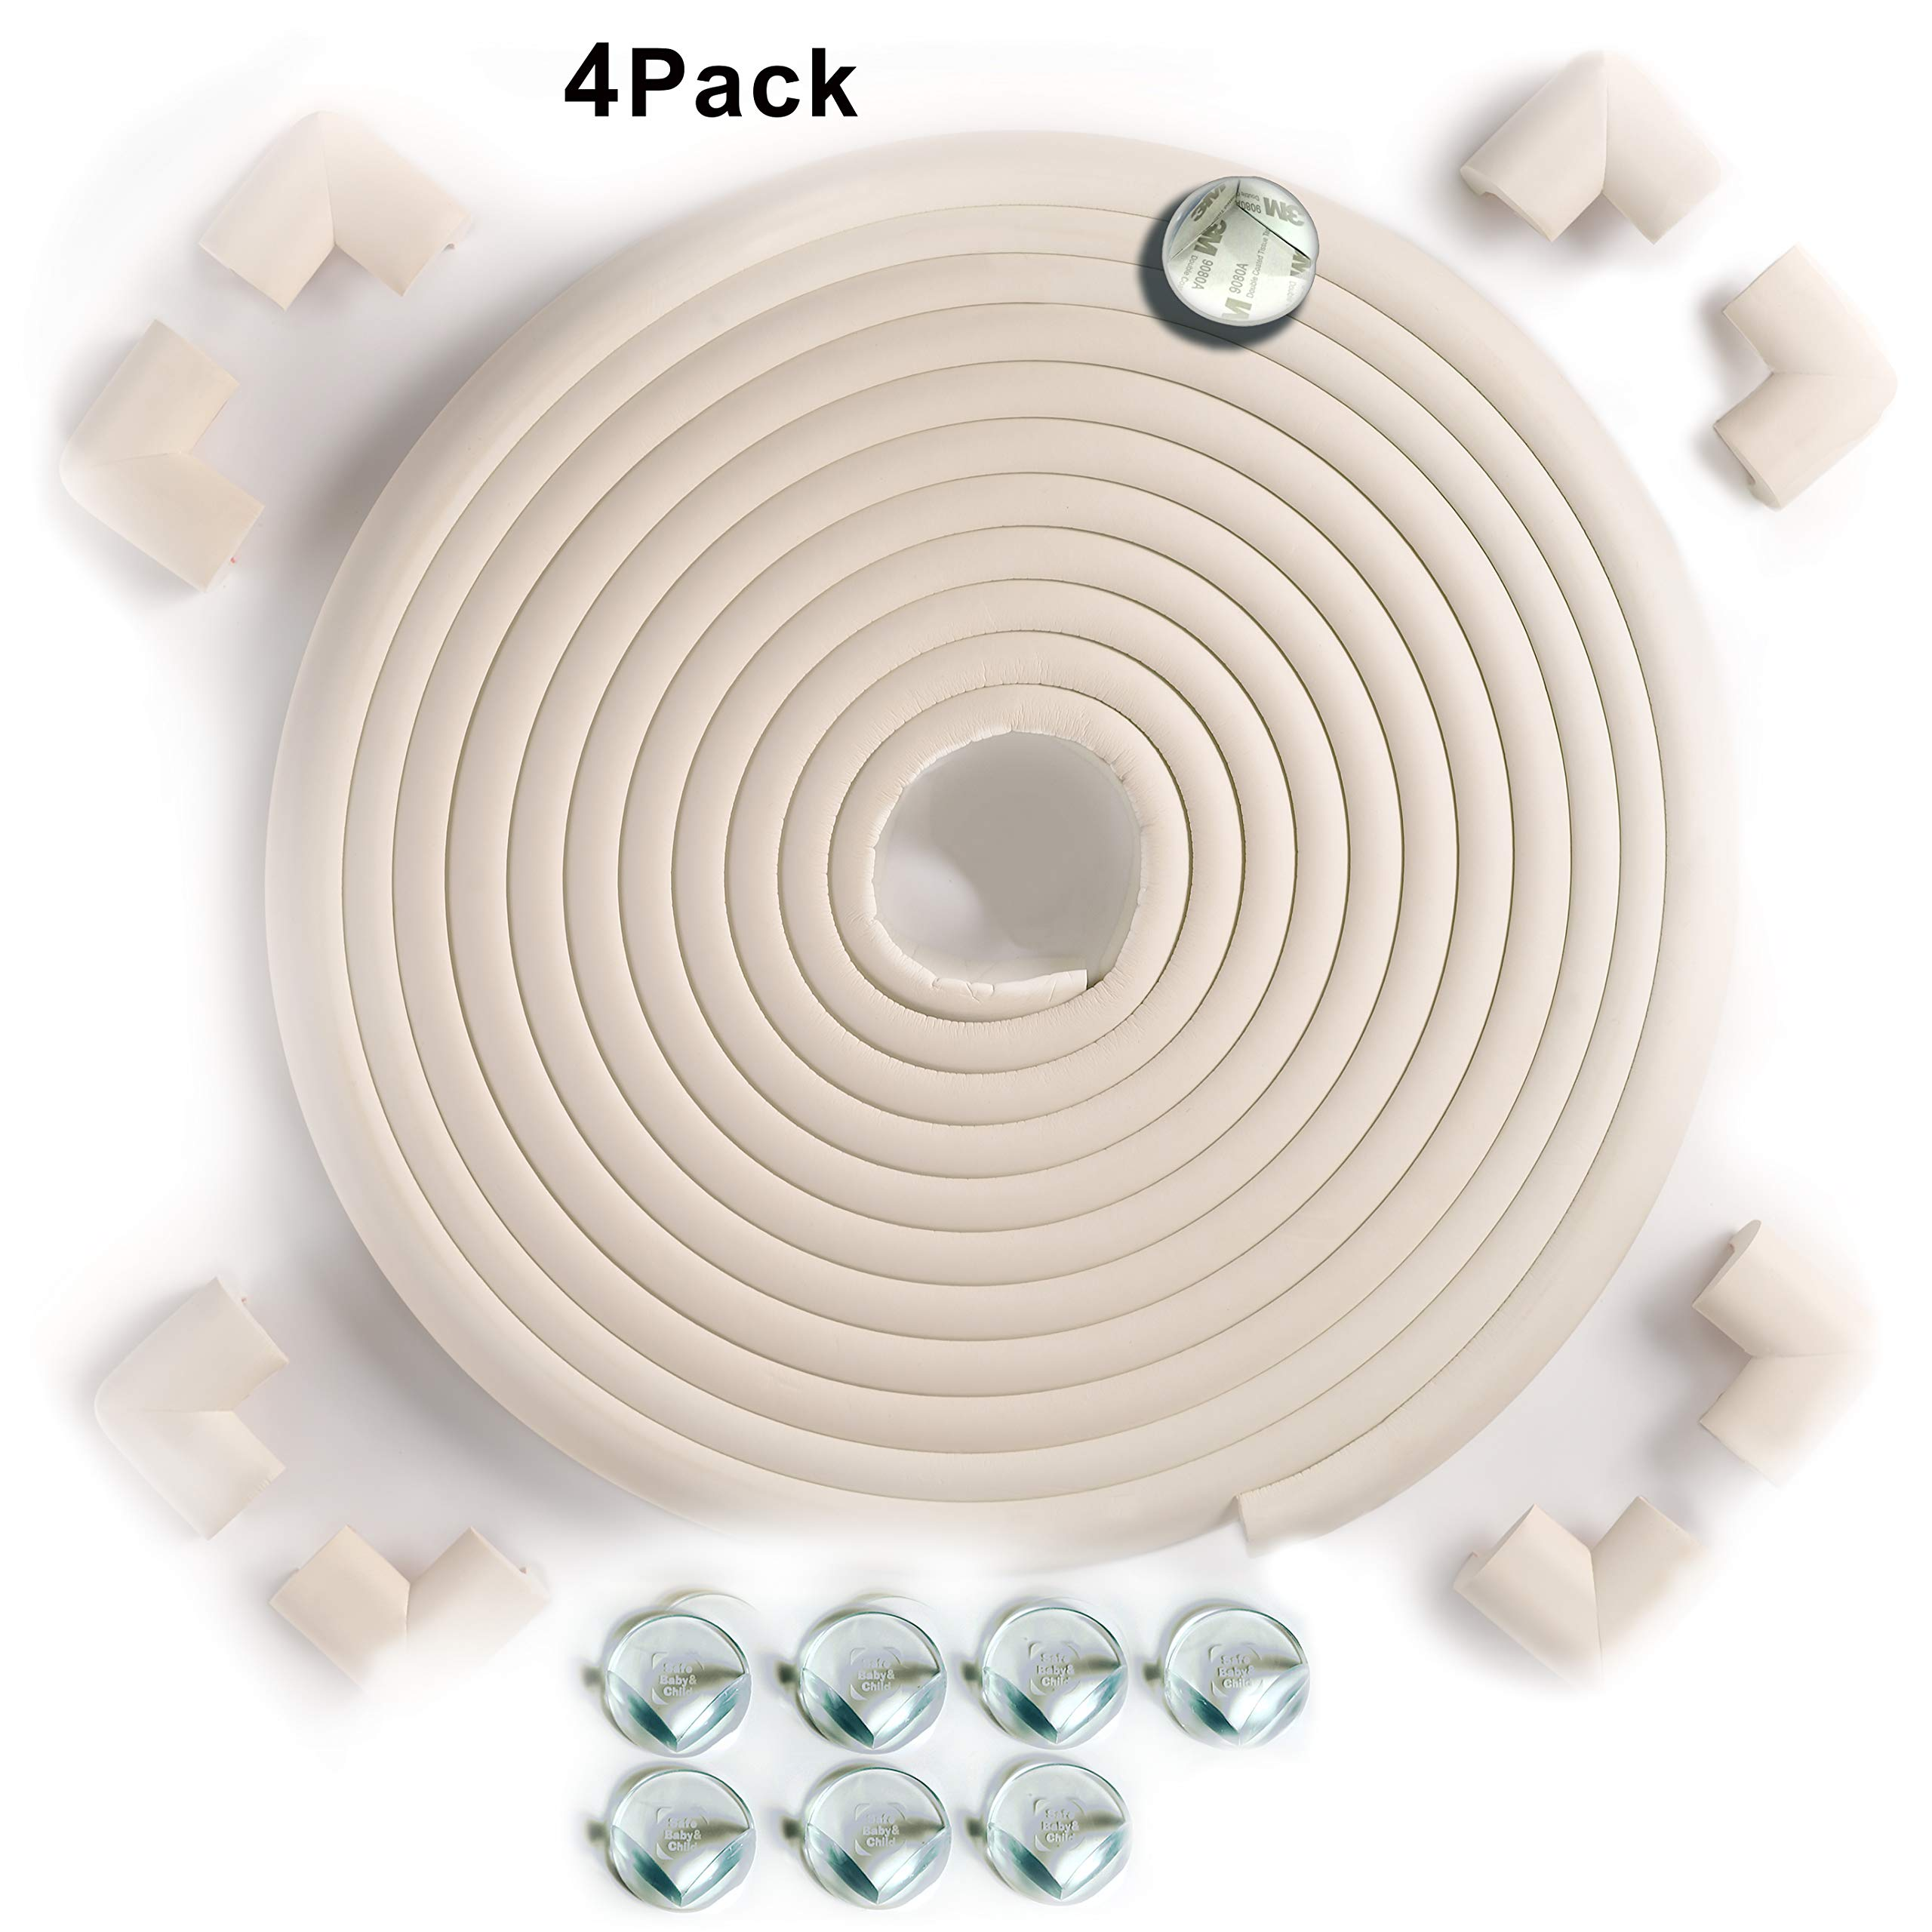 SafeBaby & Child safety 23.2ft Long Set -16 Corner guards baby-proof edge with furniture protective clear bumpers. Toddlers cushion fireplace foam strip pad childproofing hearth protection.Cream White